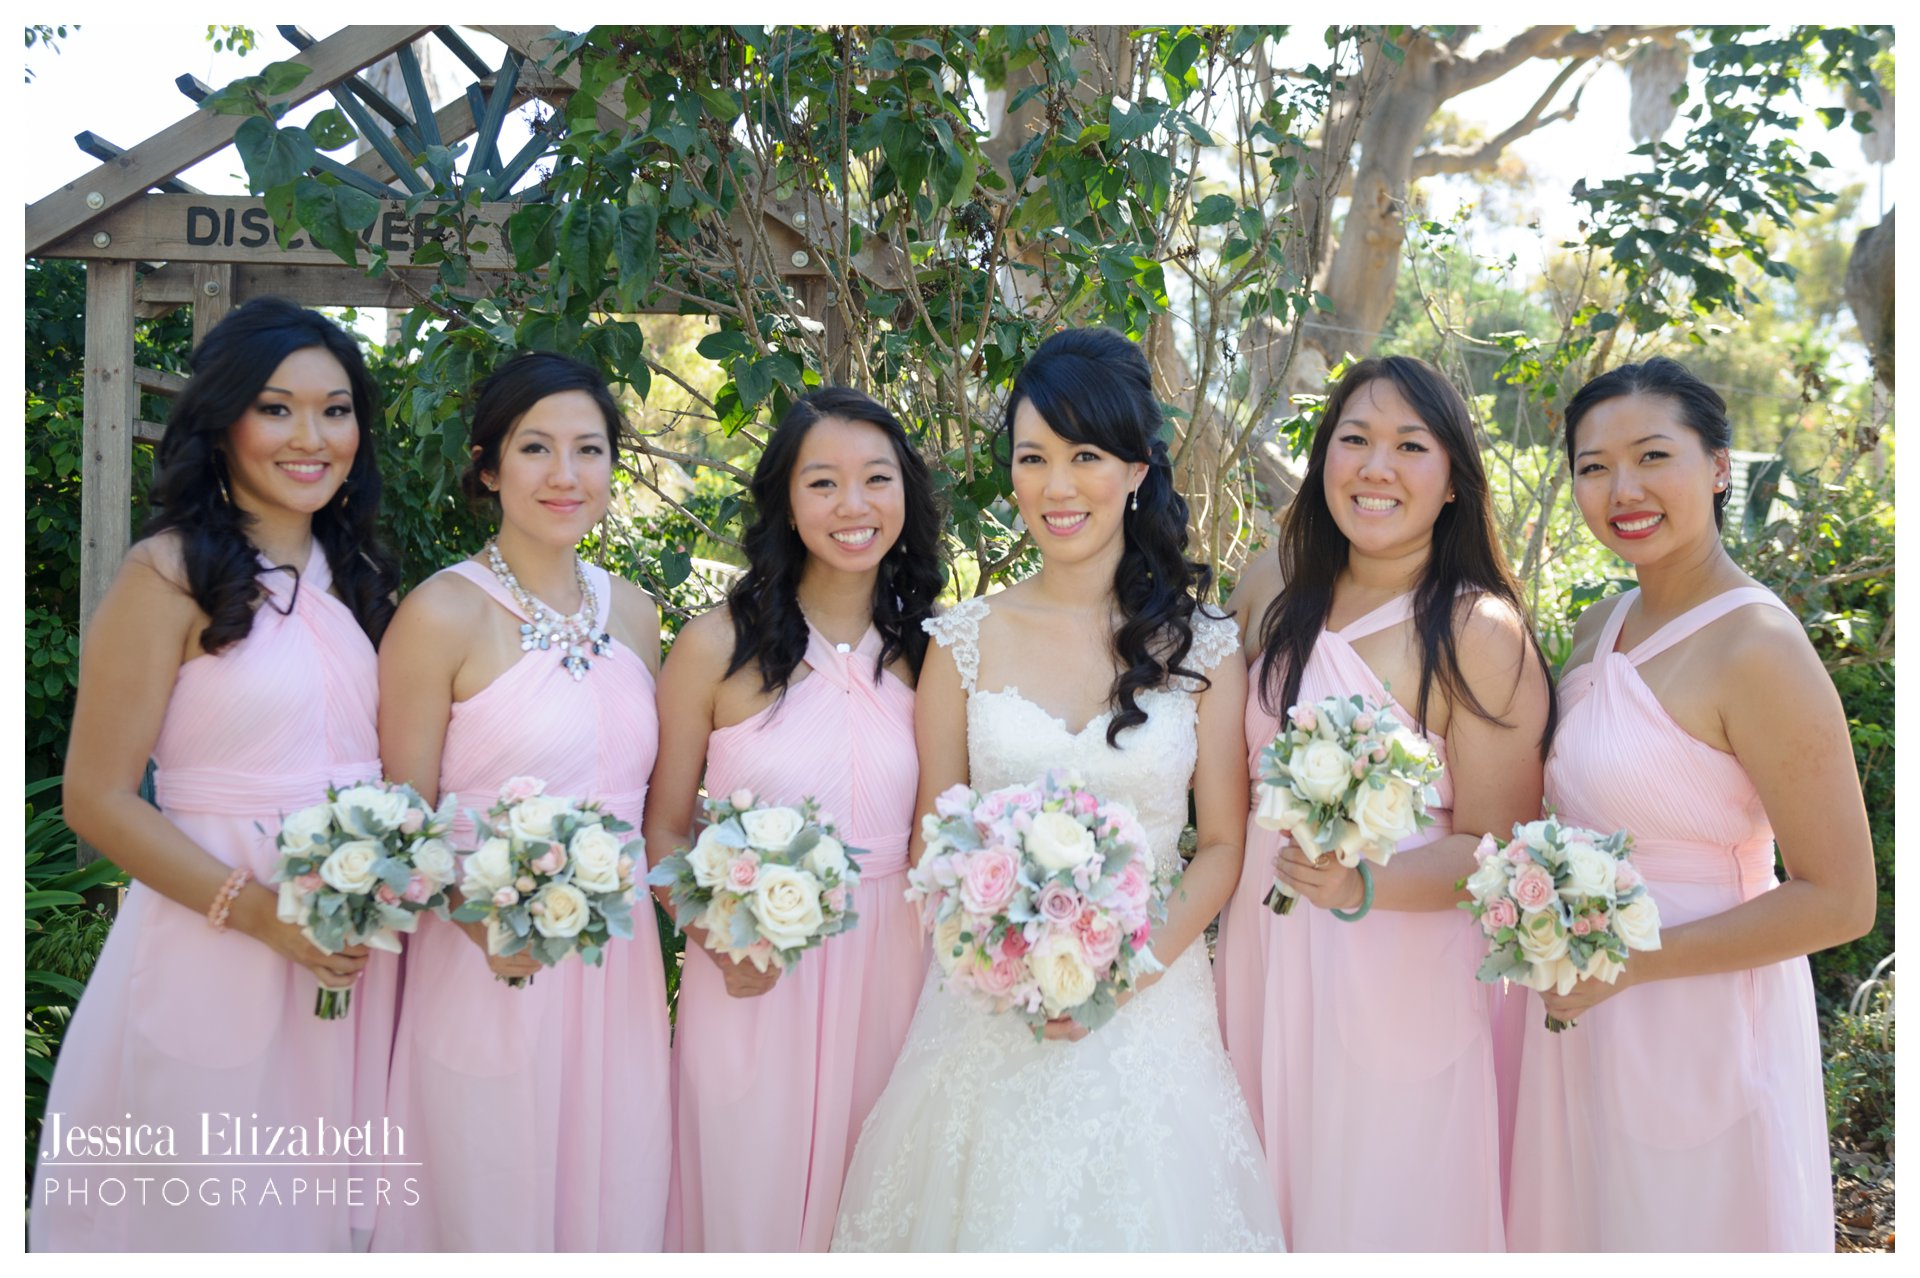 05-South-Coast-Botanic-Garden-Palos-Verdes-Wedding-Photography-by-Jessica-Elizabeth.jpg